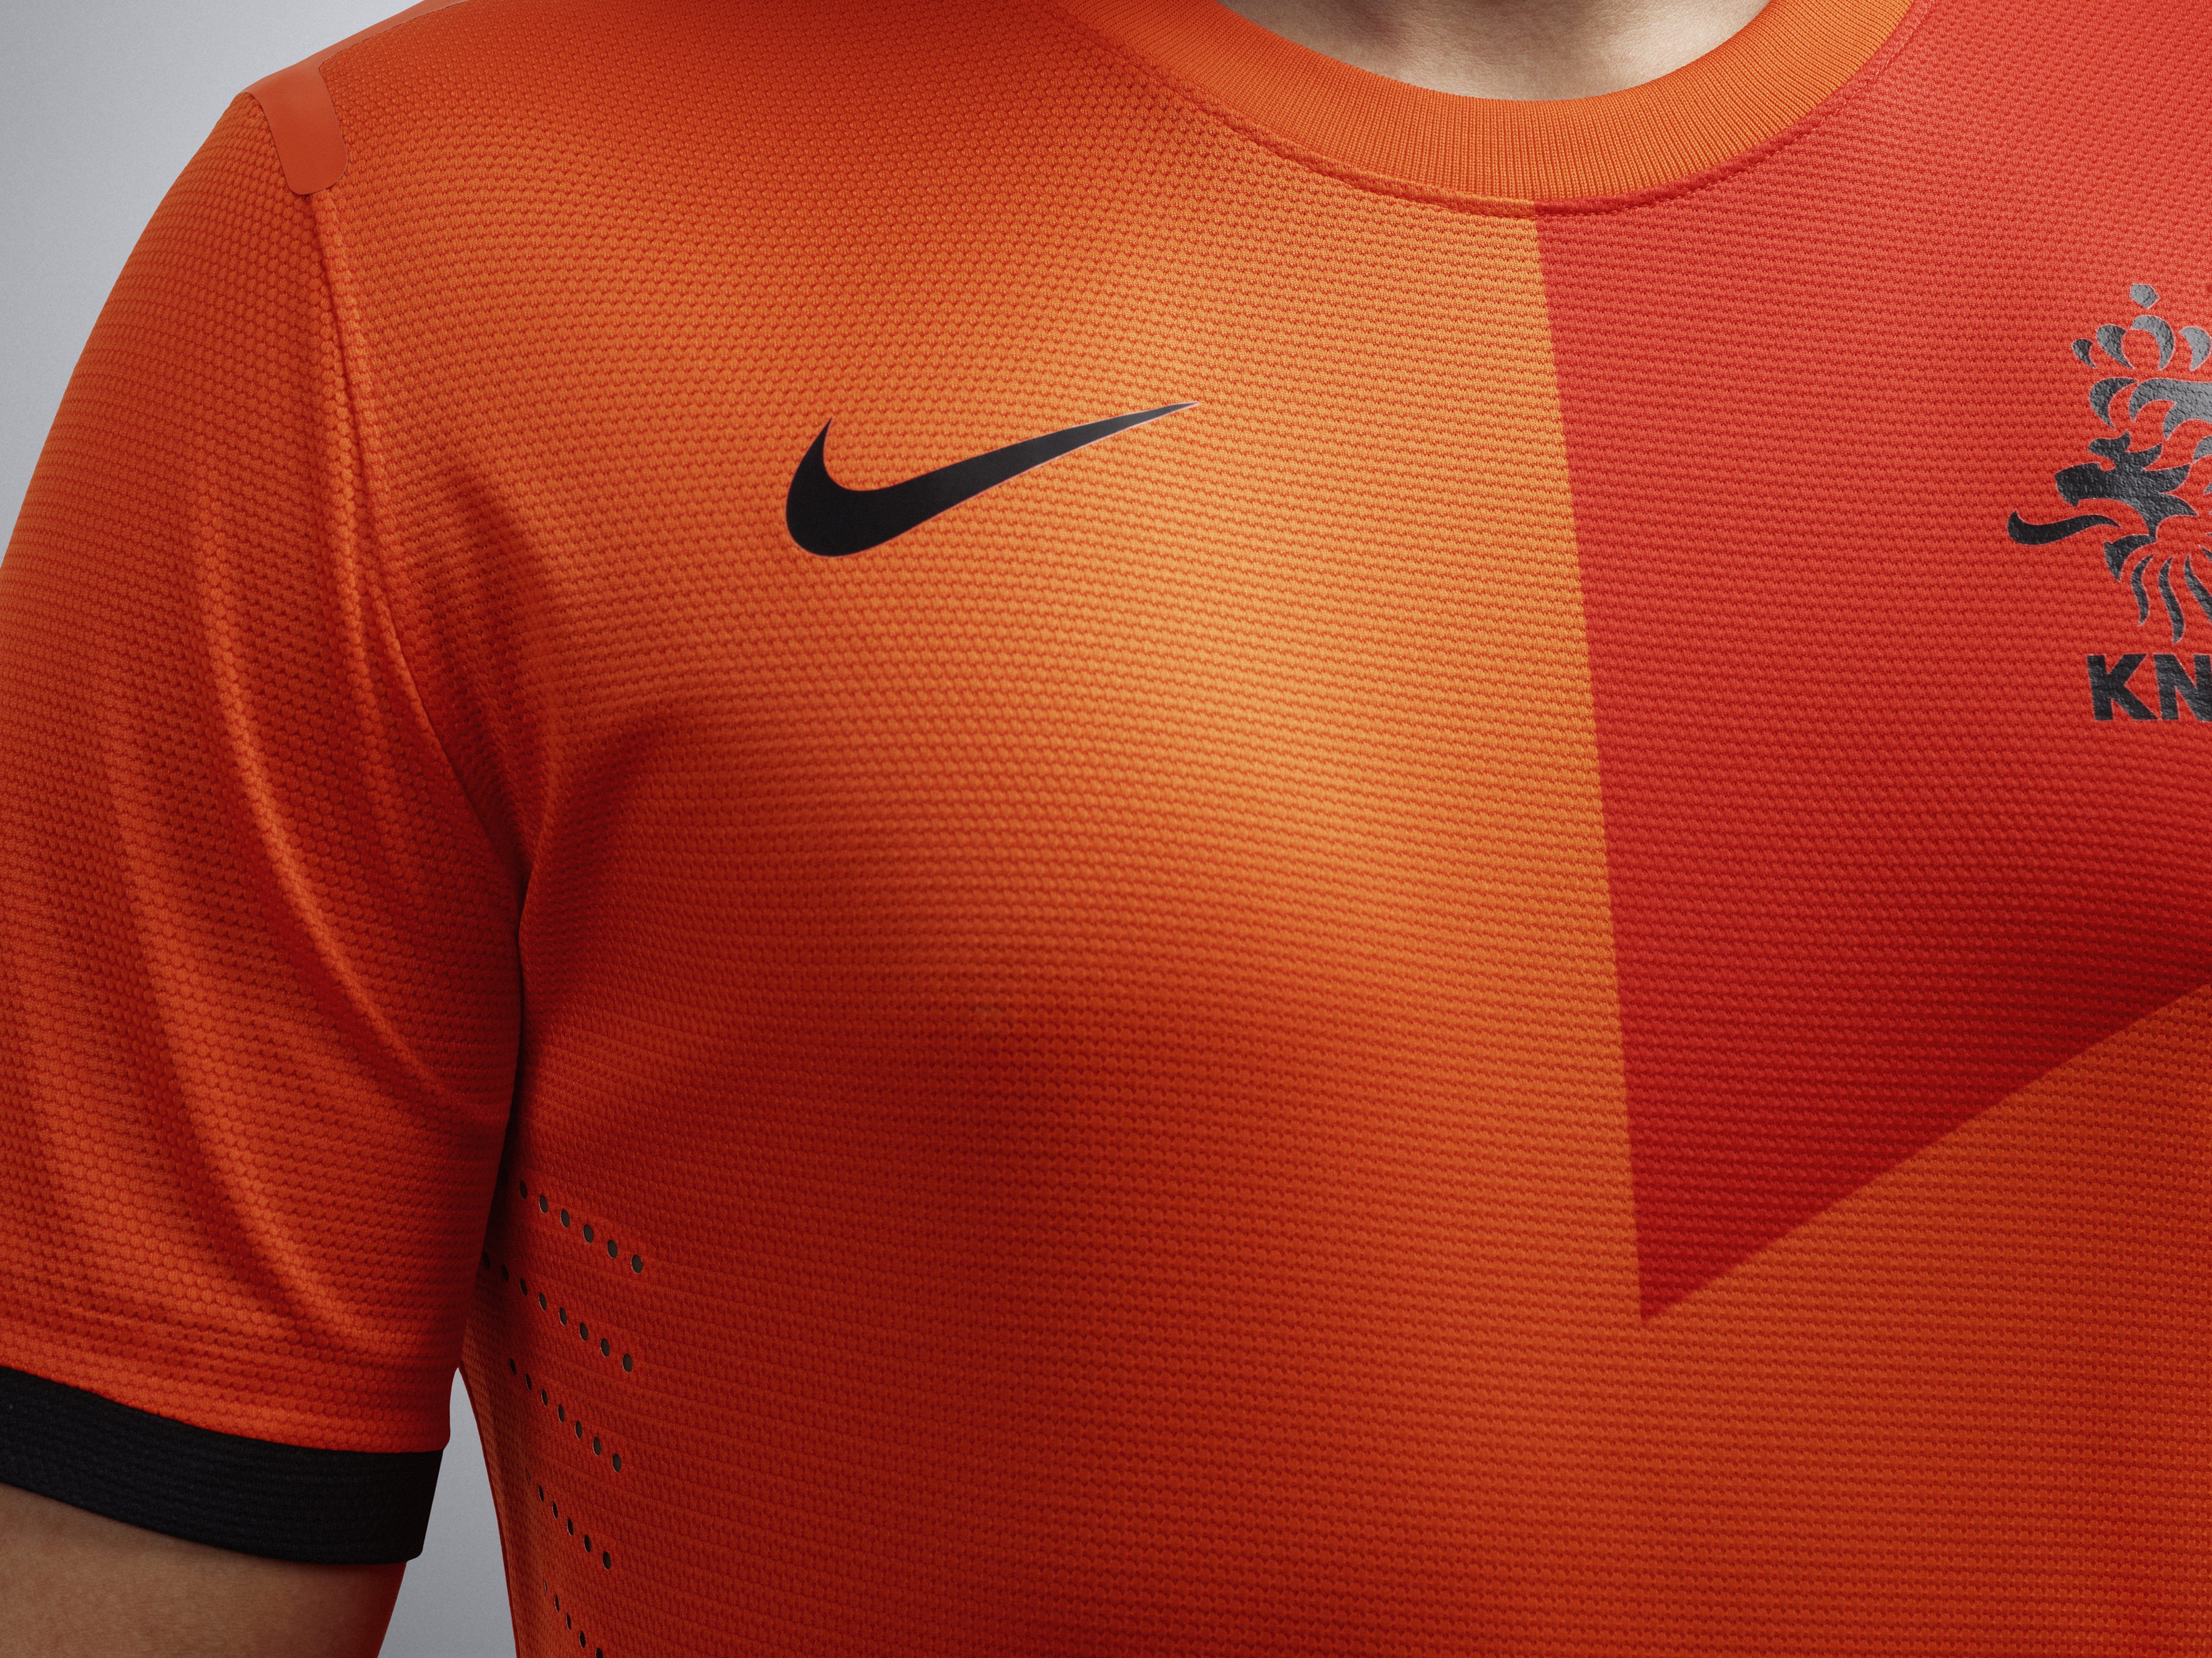 nike air max lebron 7 chaussures - Nike News - The Netherlands 2012 National Team Home Kit